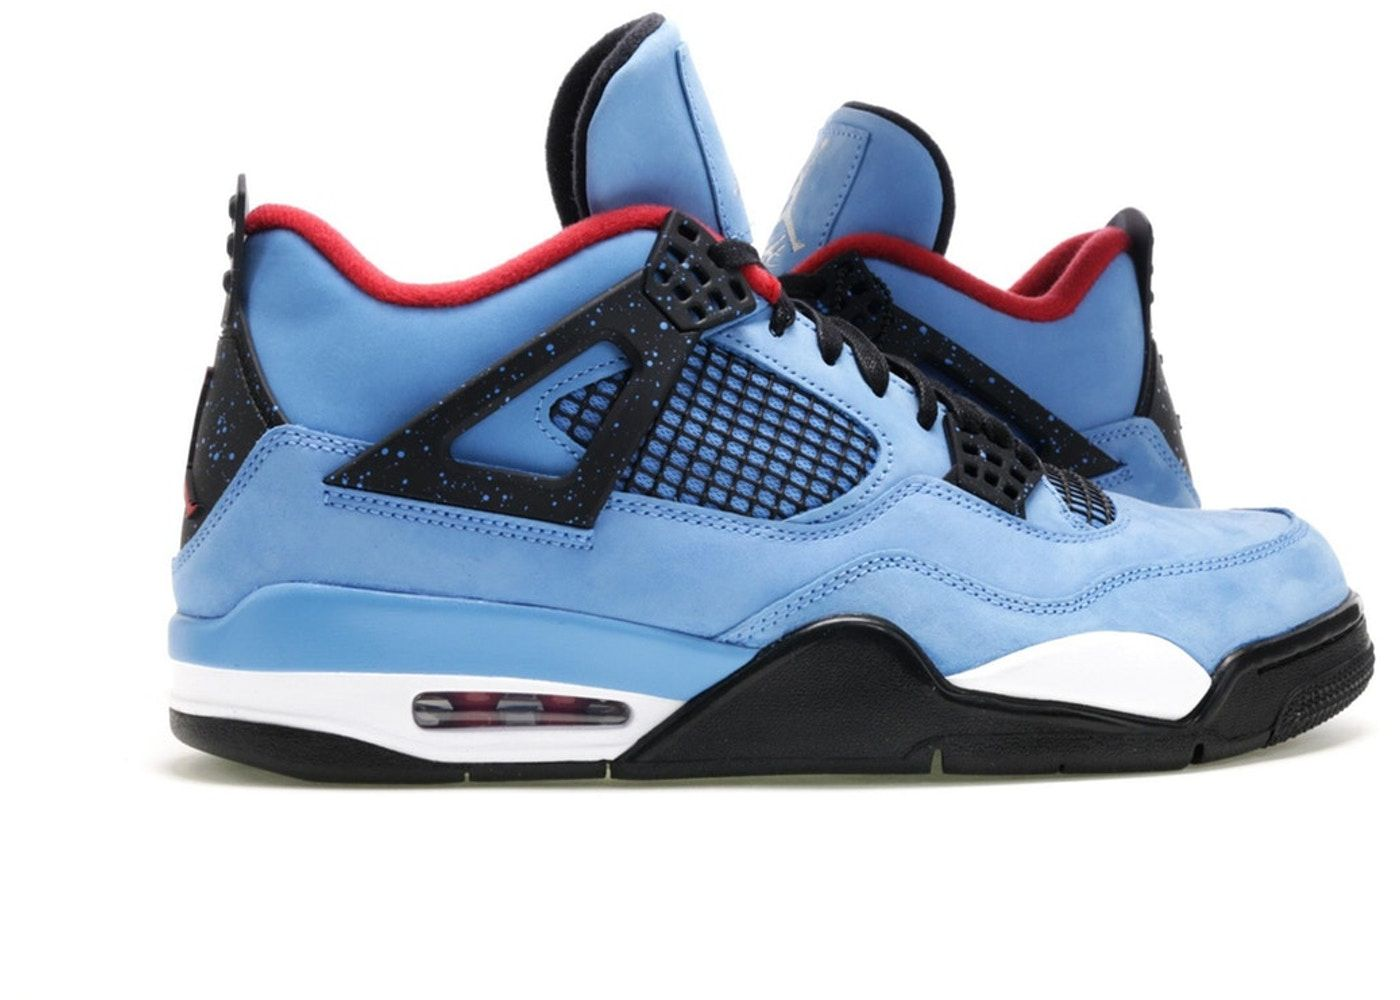 Jordan 4 Retro Travis Scott Cactus Jack With Images Jordan 4